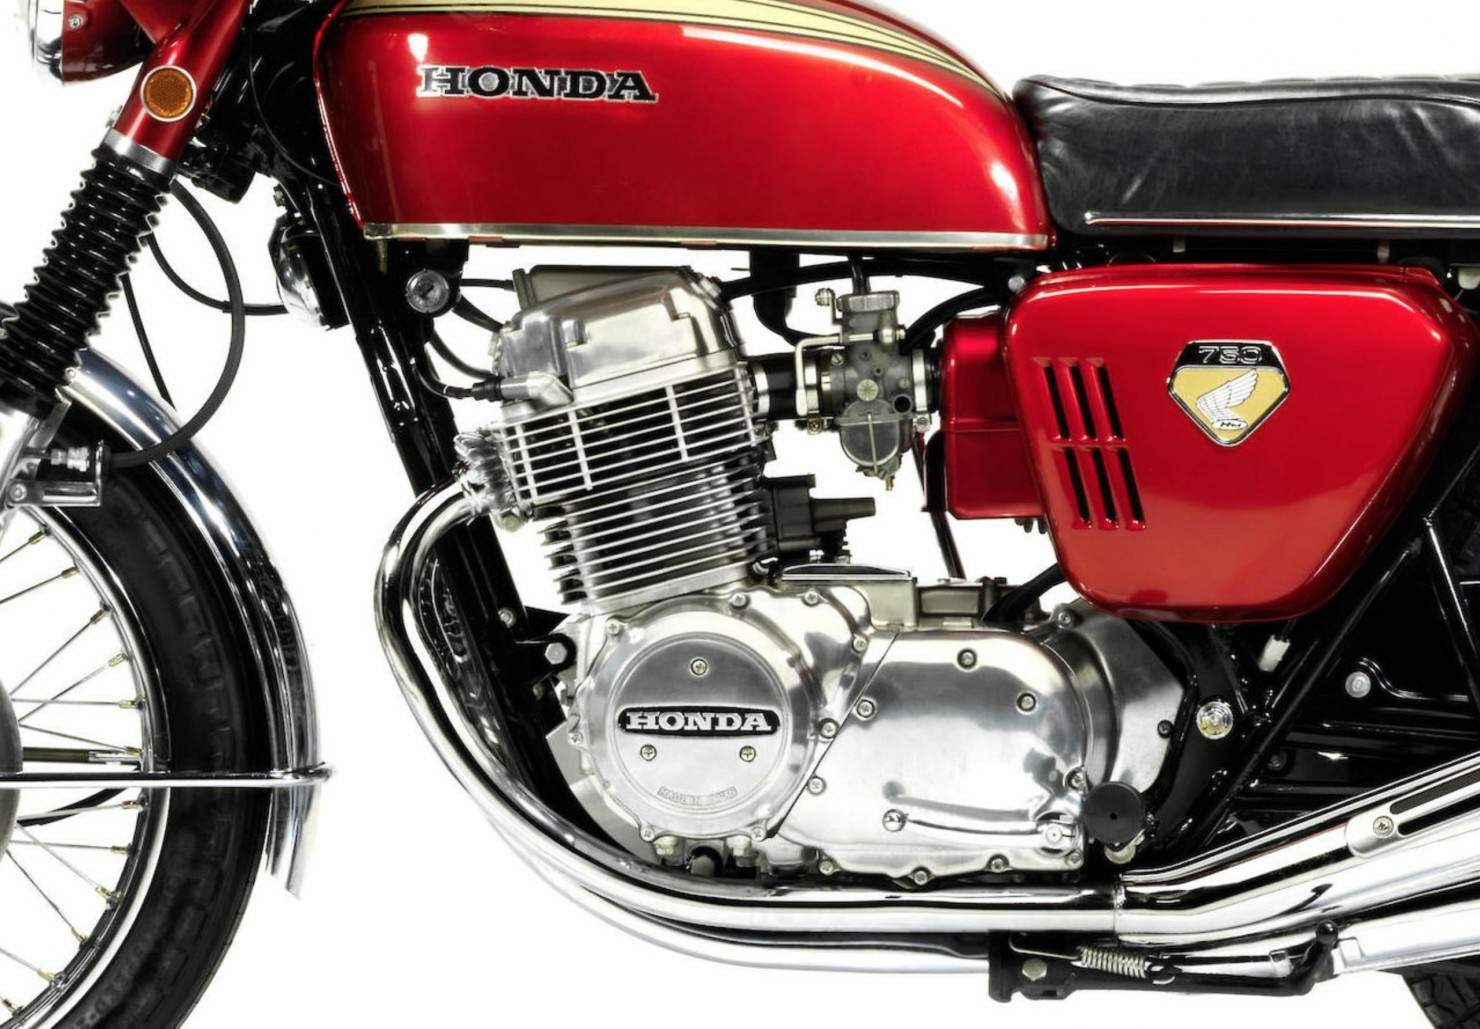 Honda Cb750 Bike 1970 Cb750f Of Most Interest In The Effective But Mostly Conventional Chassis Rolling Gear Assembly Is Hydraulically Operated Singlc Caliper Disc Front Brake